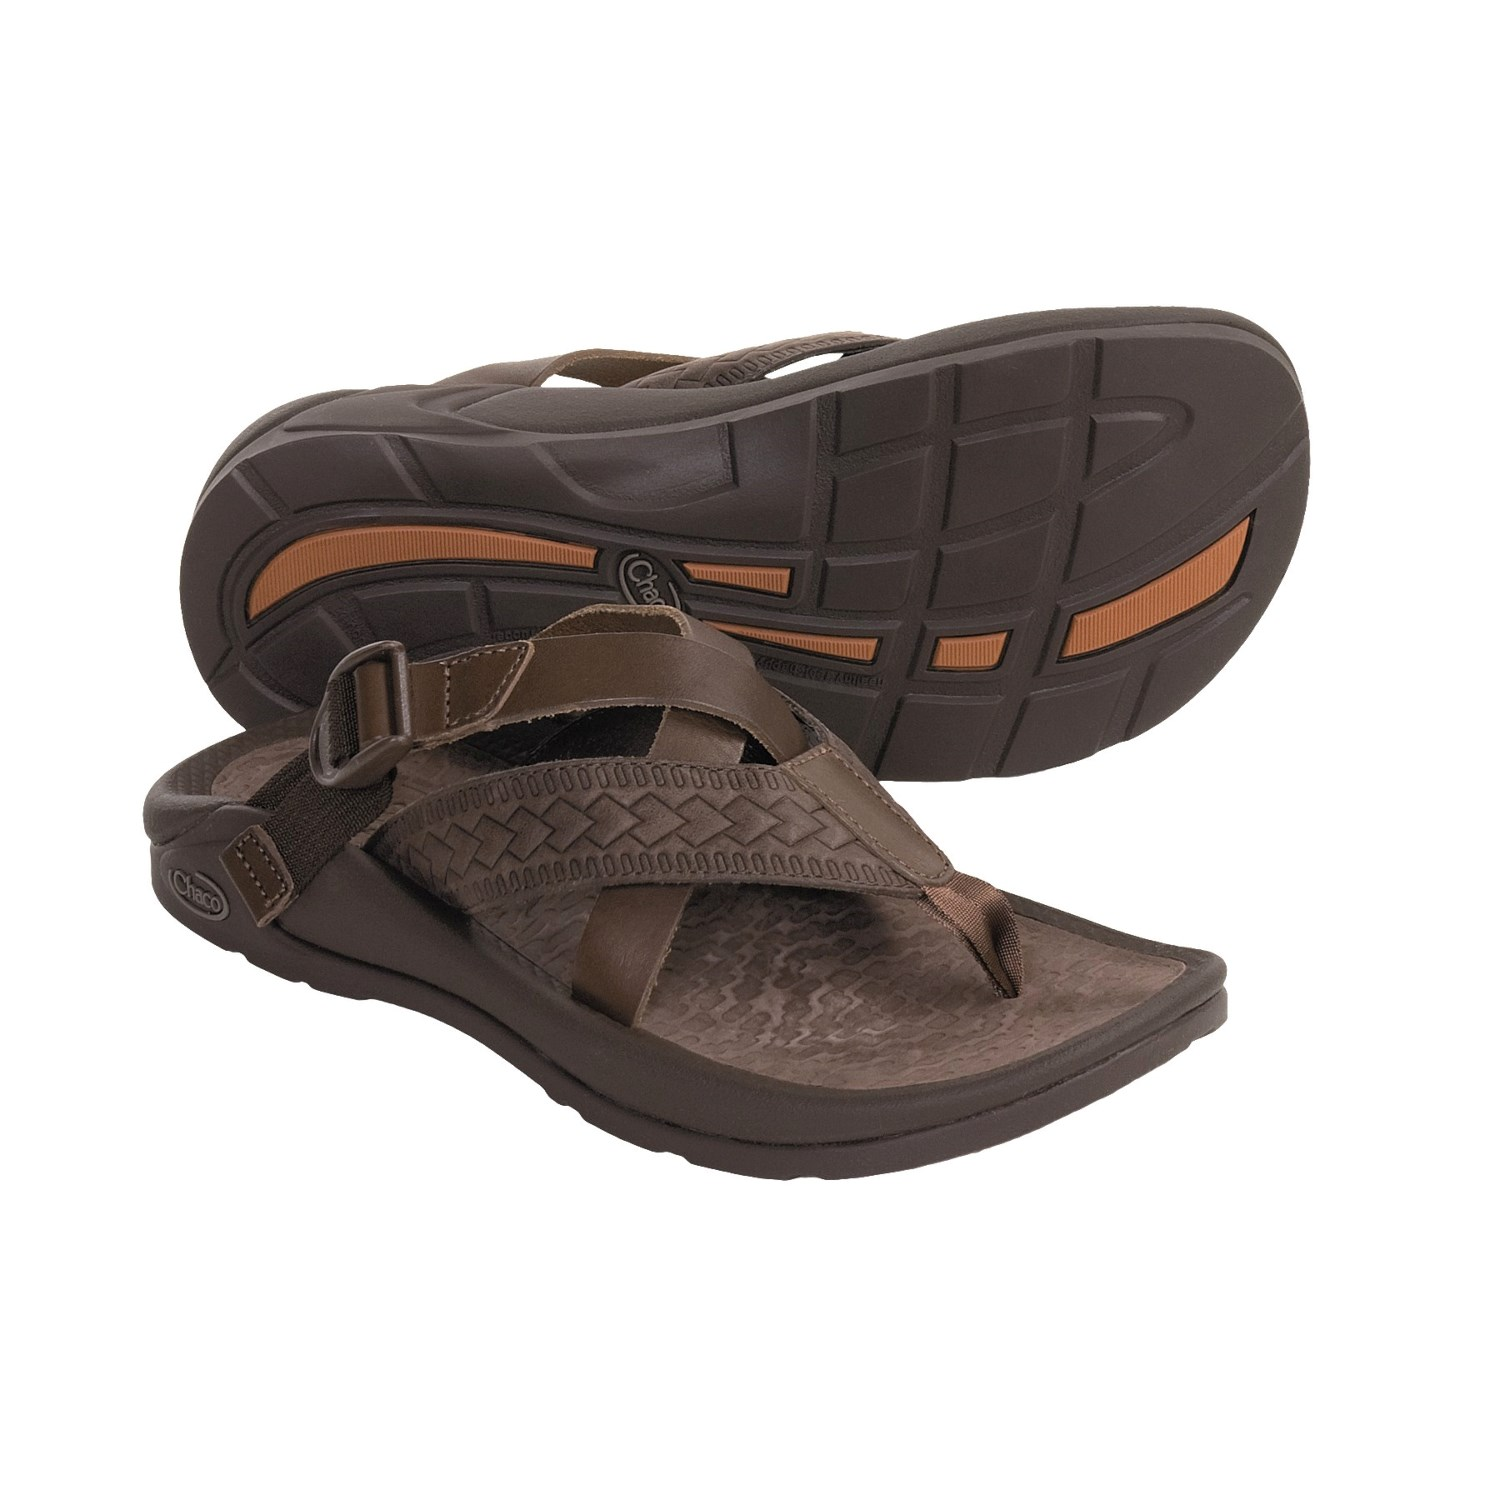 Chaco Shoes Reviews